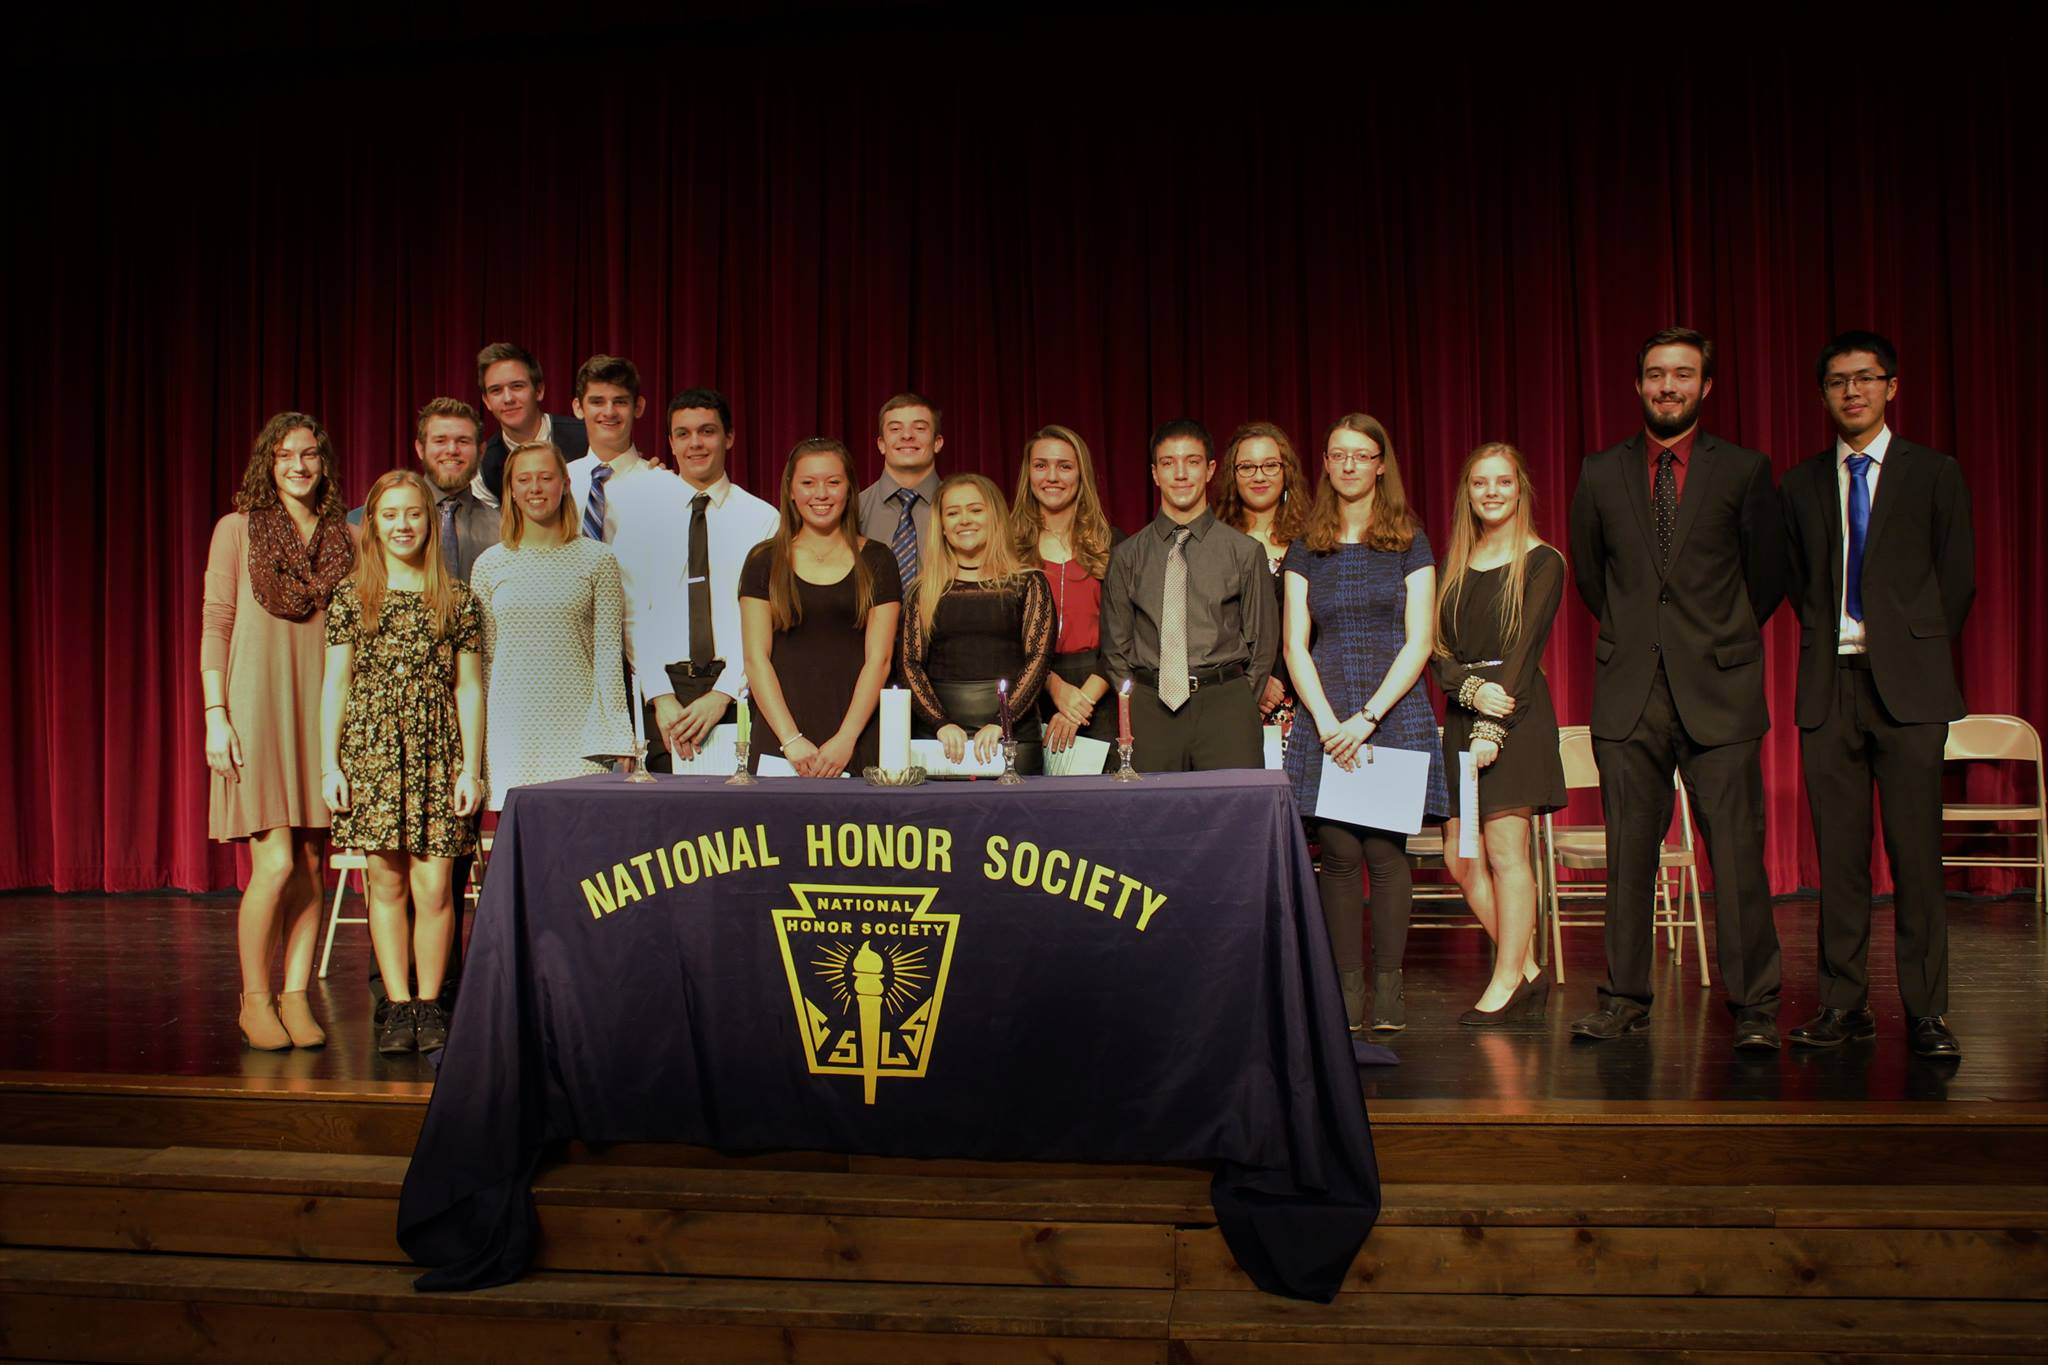 NHS members were inducted at a ceremony last Thursday.